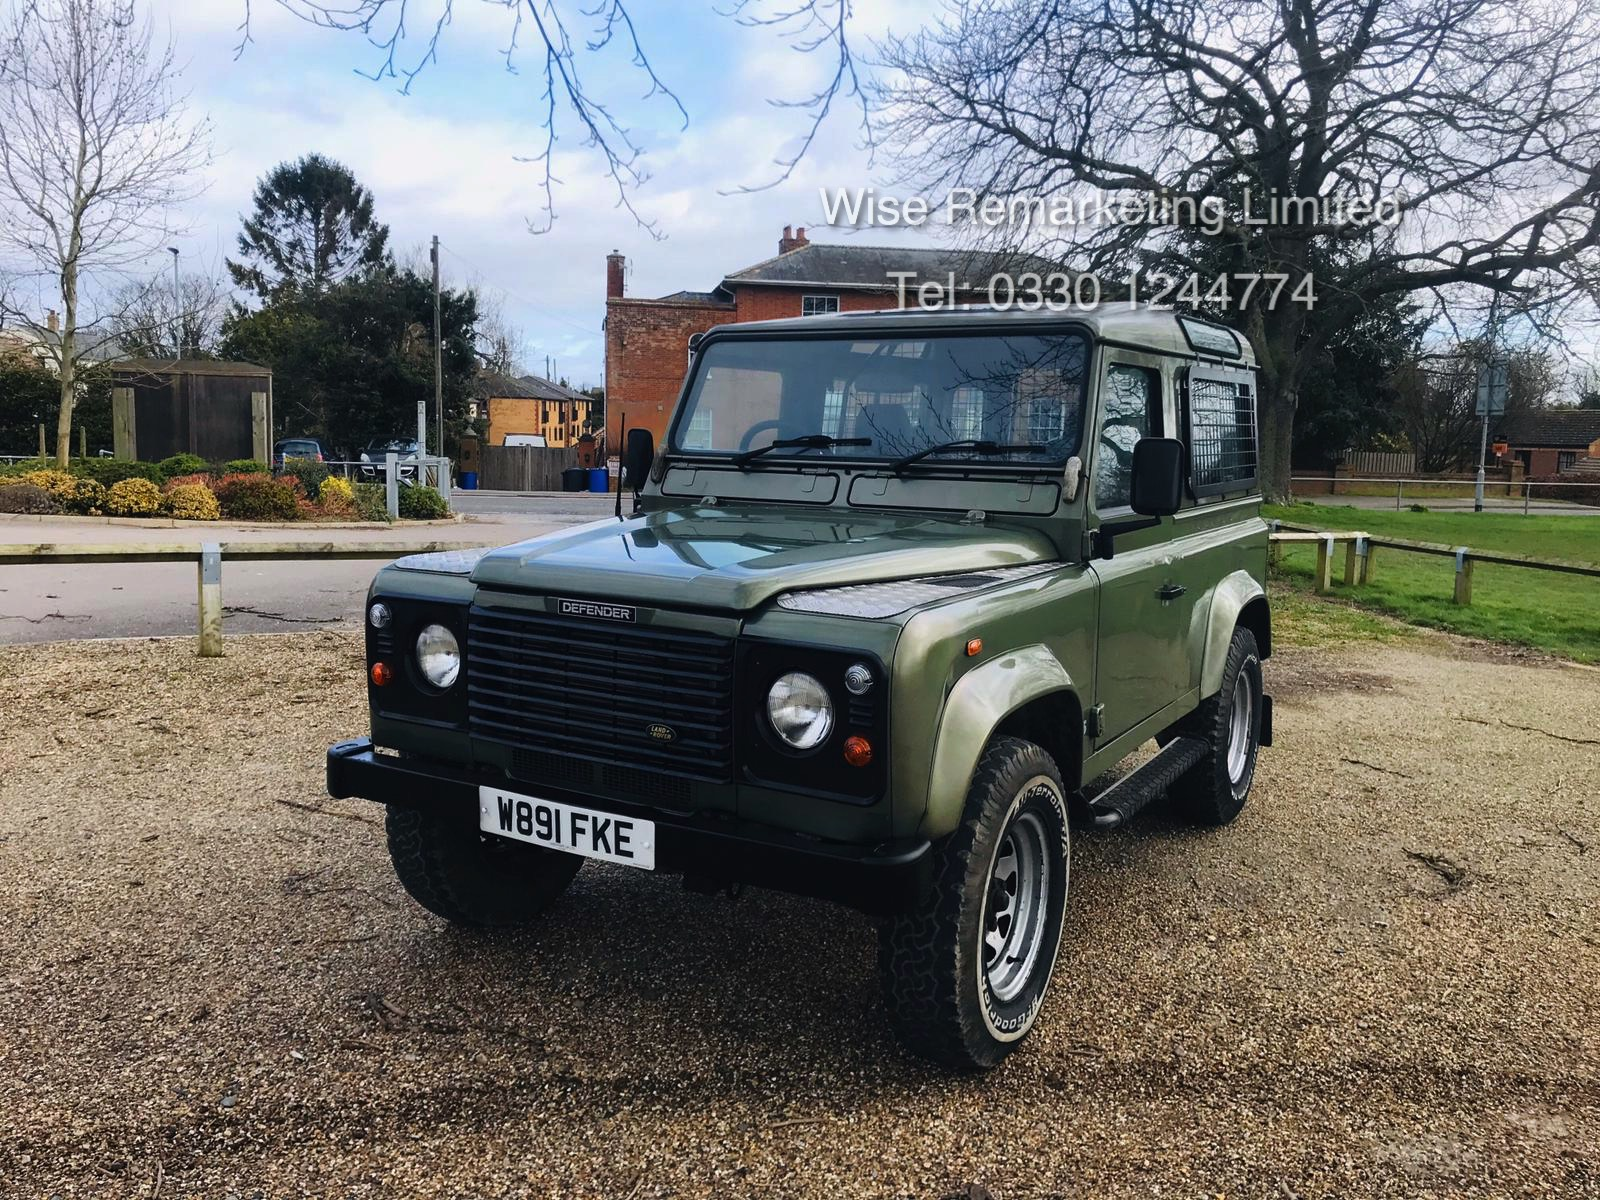 (RESERVE MET) Land Rover Defender 90 County 2.5 TD5 - 2000 Year W Reg - 7 Seater- SAVE 20% NO VAT - Image 3 of 12